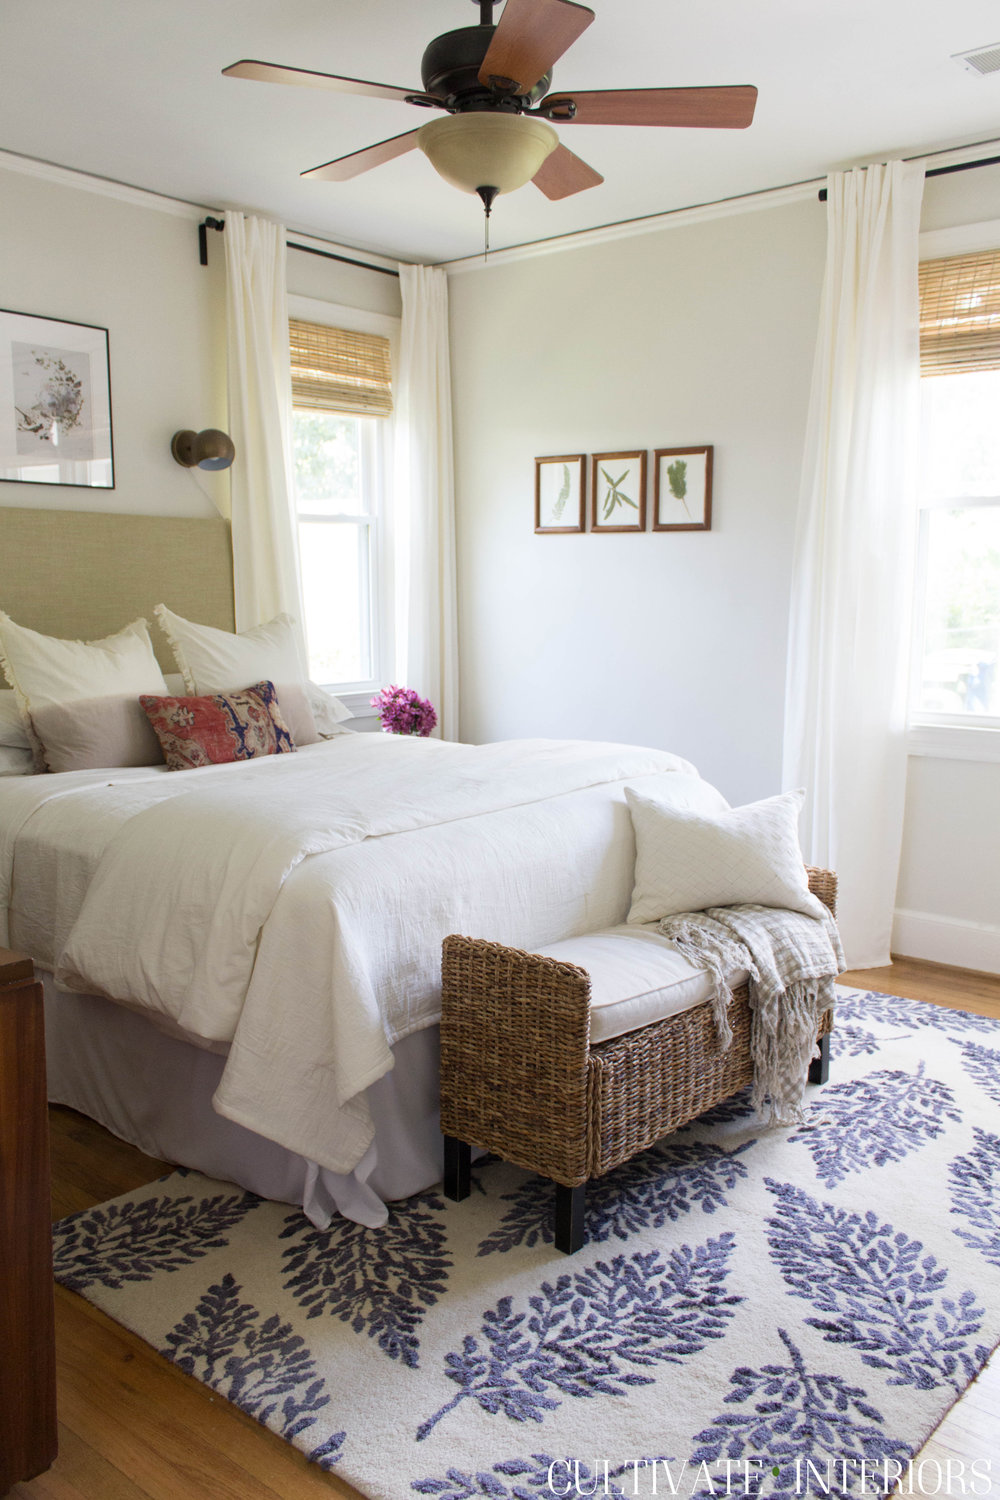 Eclectic natural bedroom with pressed botanicals, kilim pillow, and light and bright feel